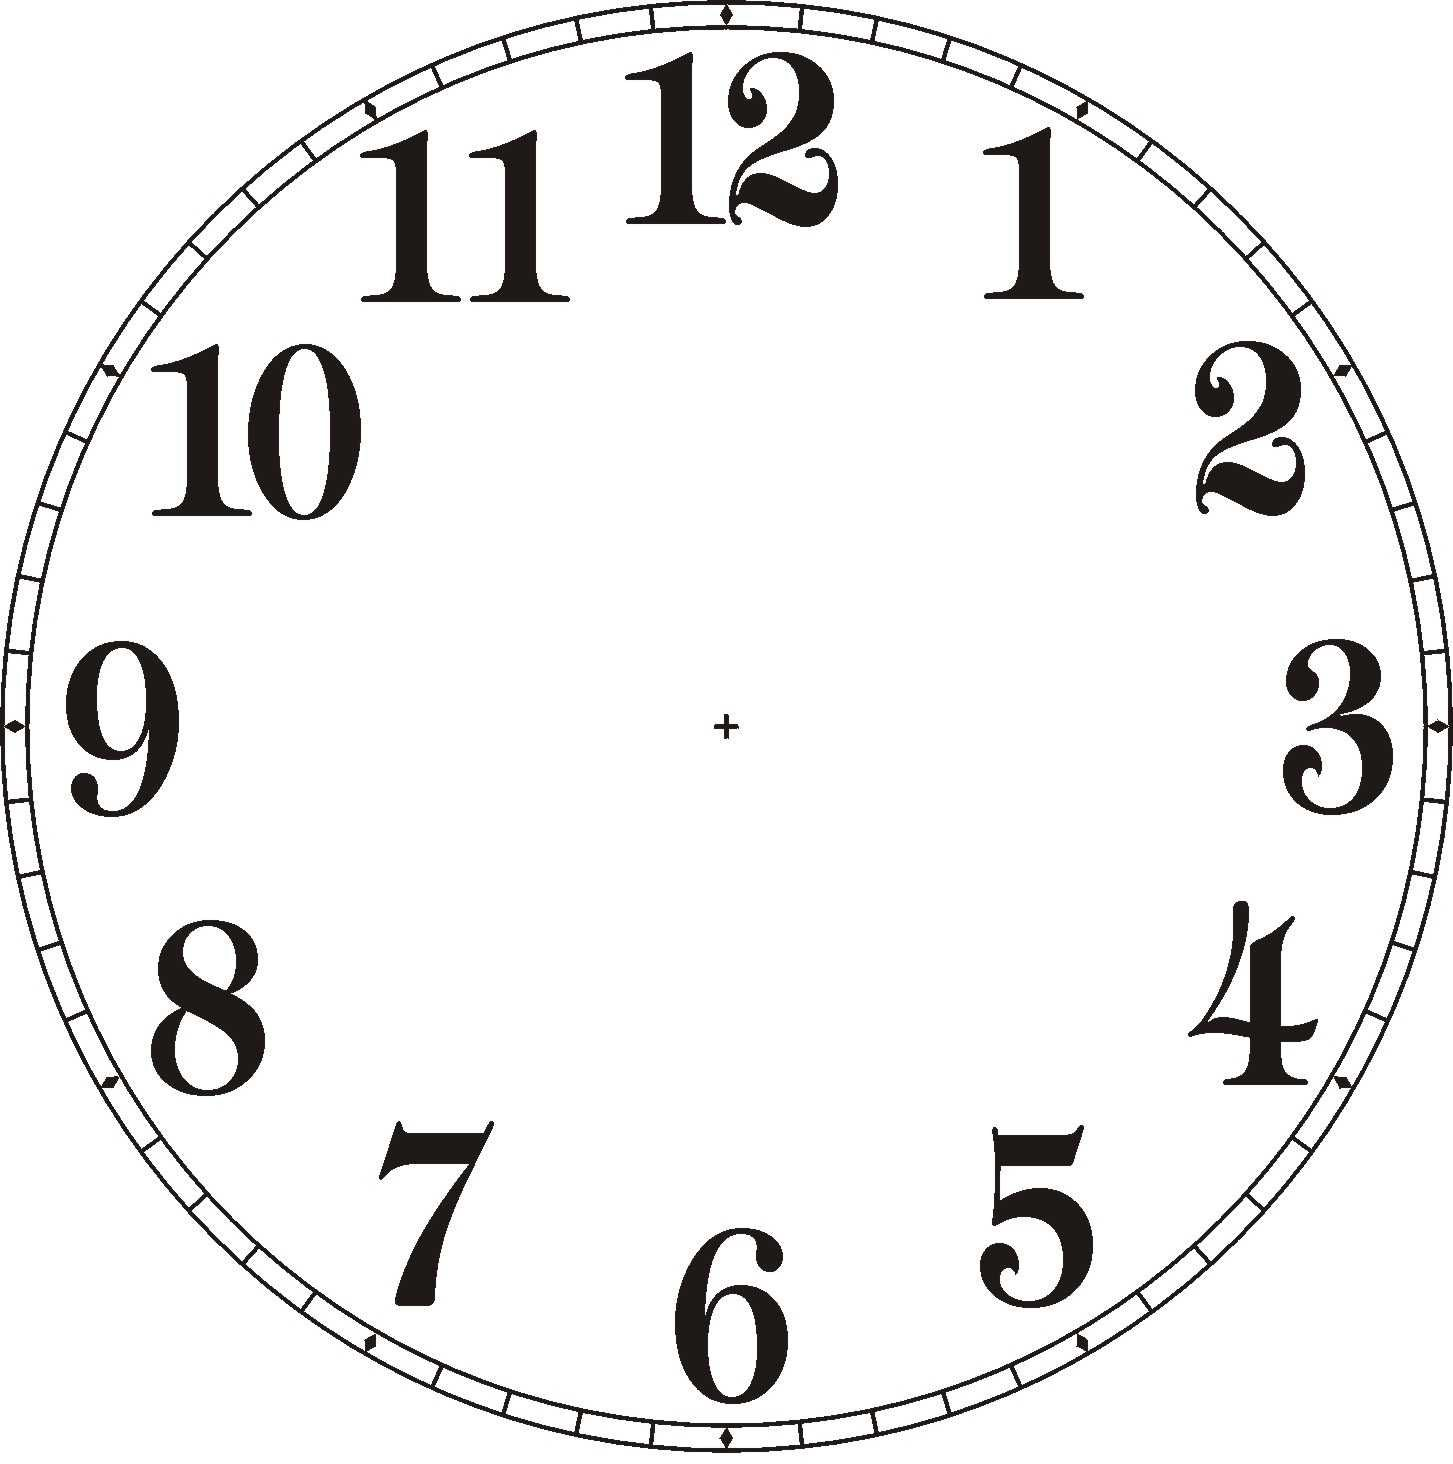 18 Clip Art Clock Face Free Cliparts That You Can